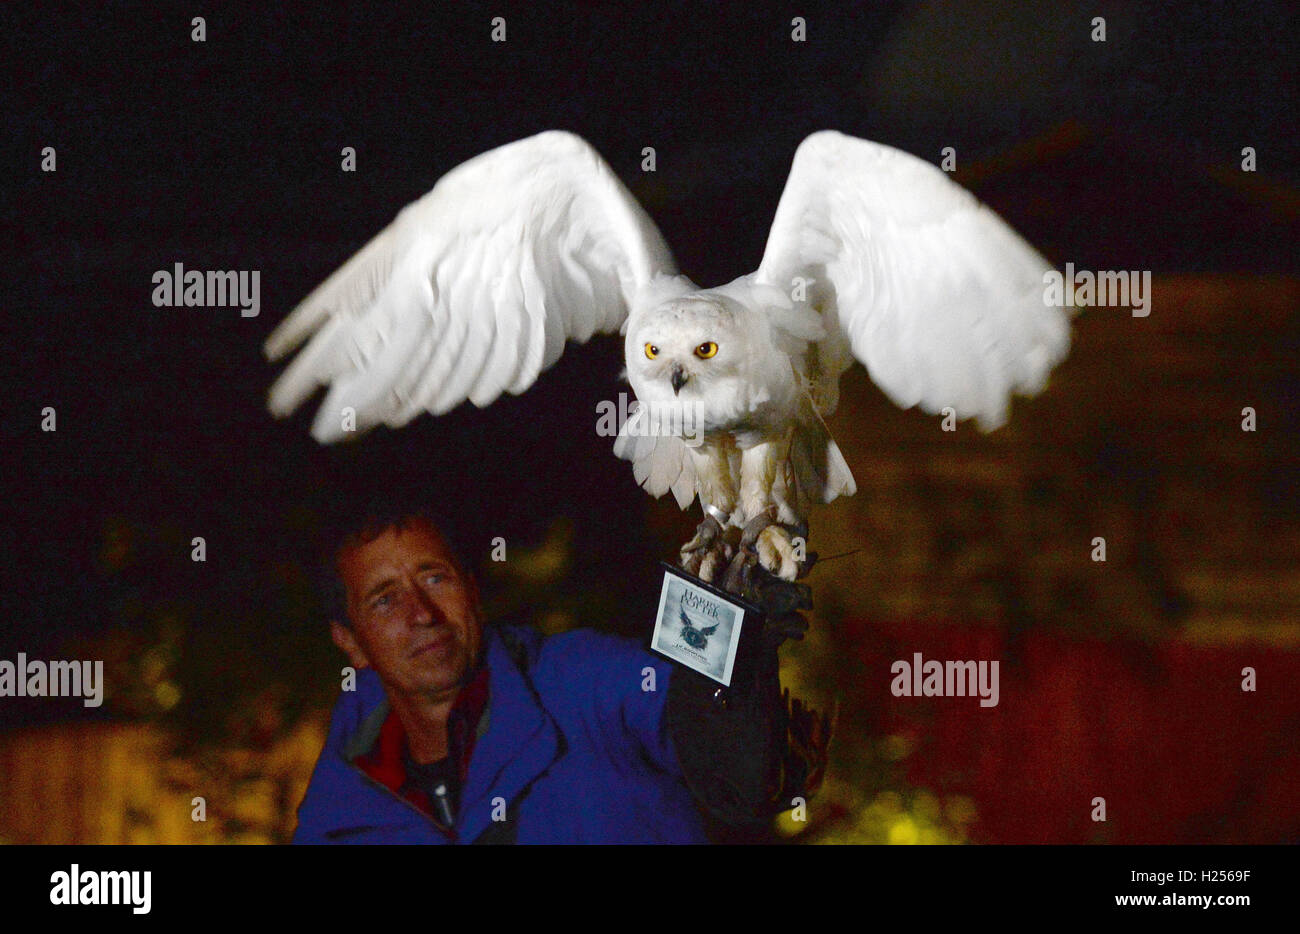 Snow Owl 'hedwig' Flies With A Kindle Ebook Reader Showing The Cover Of The  New Harry Potter Book 'harry Potter And The Cursed Child' Through A Garden